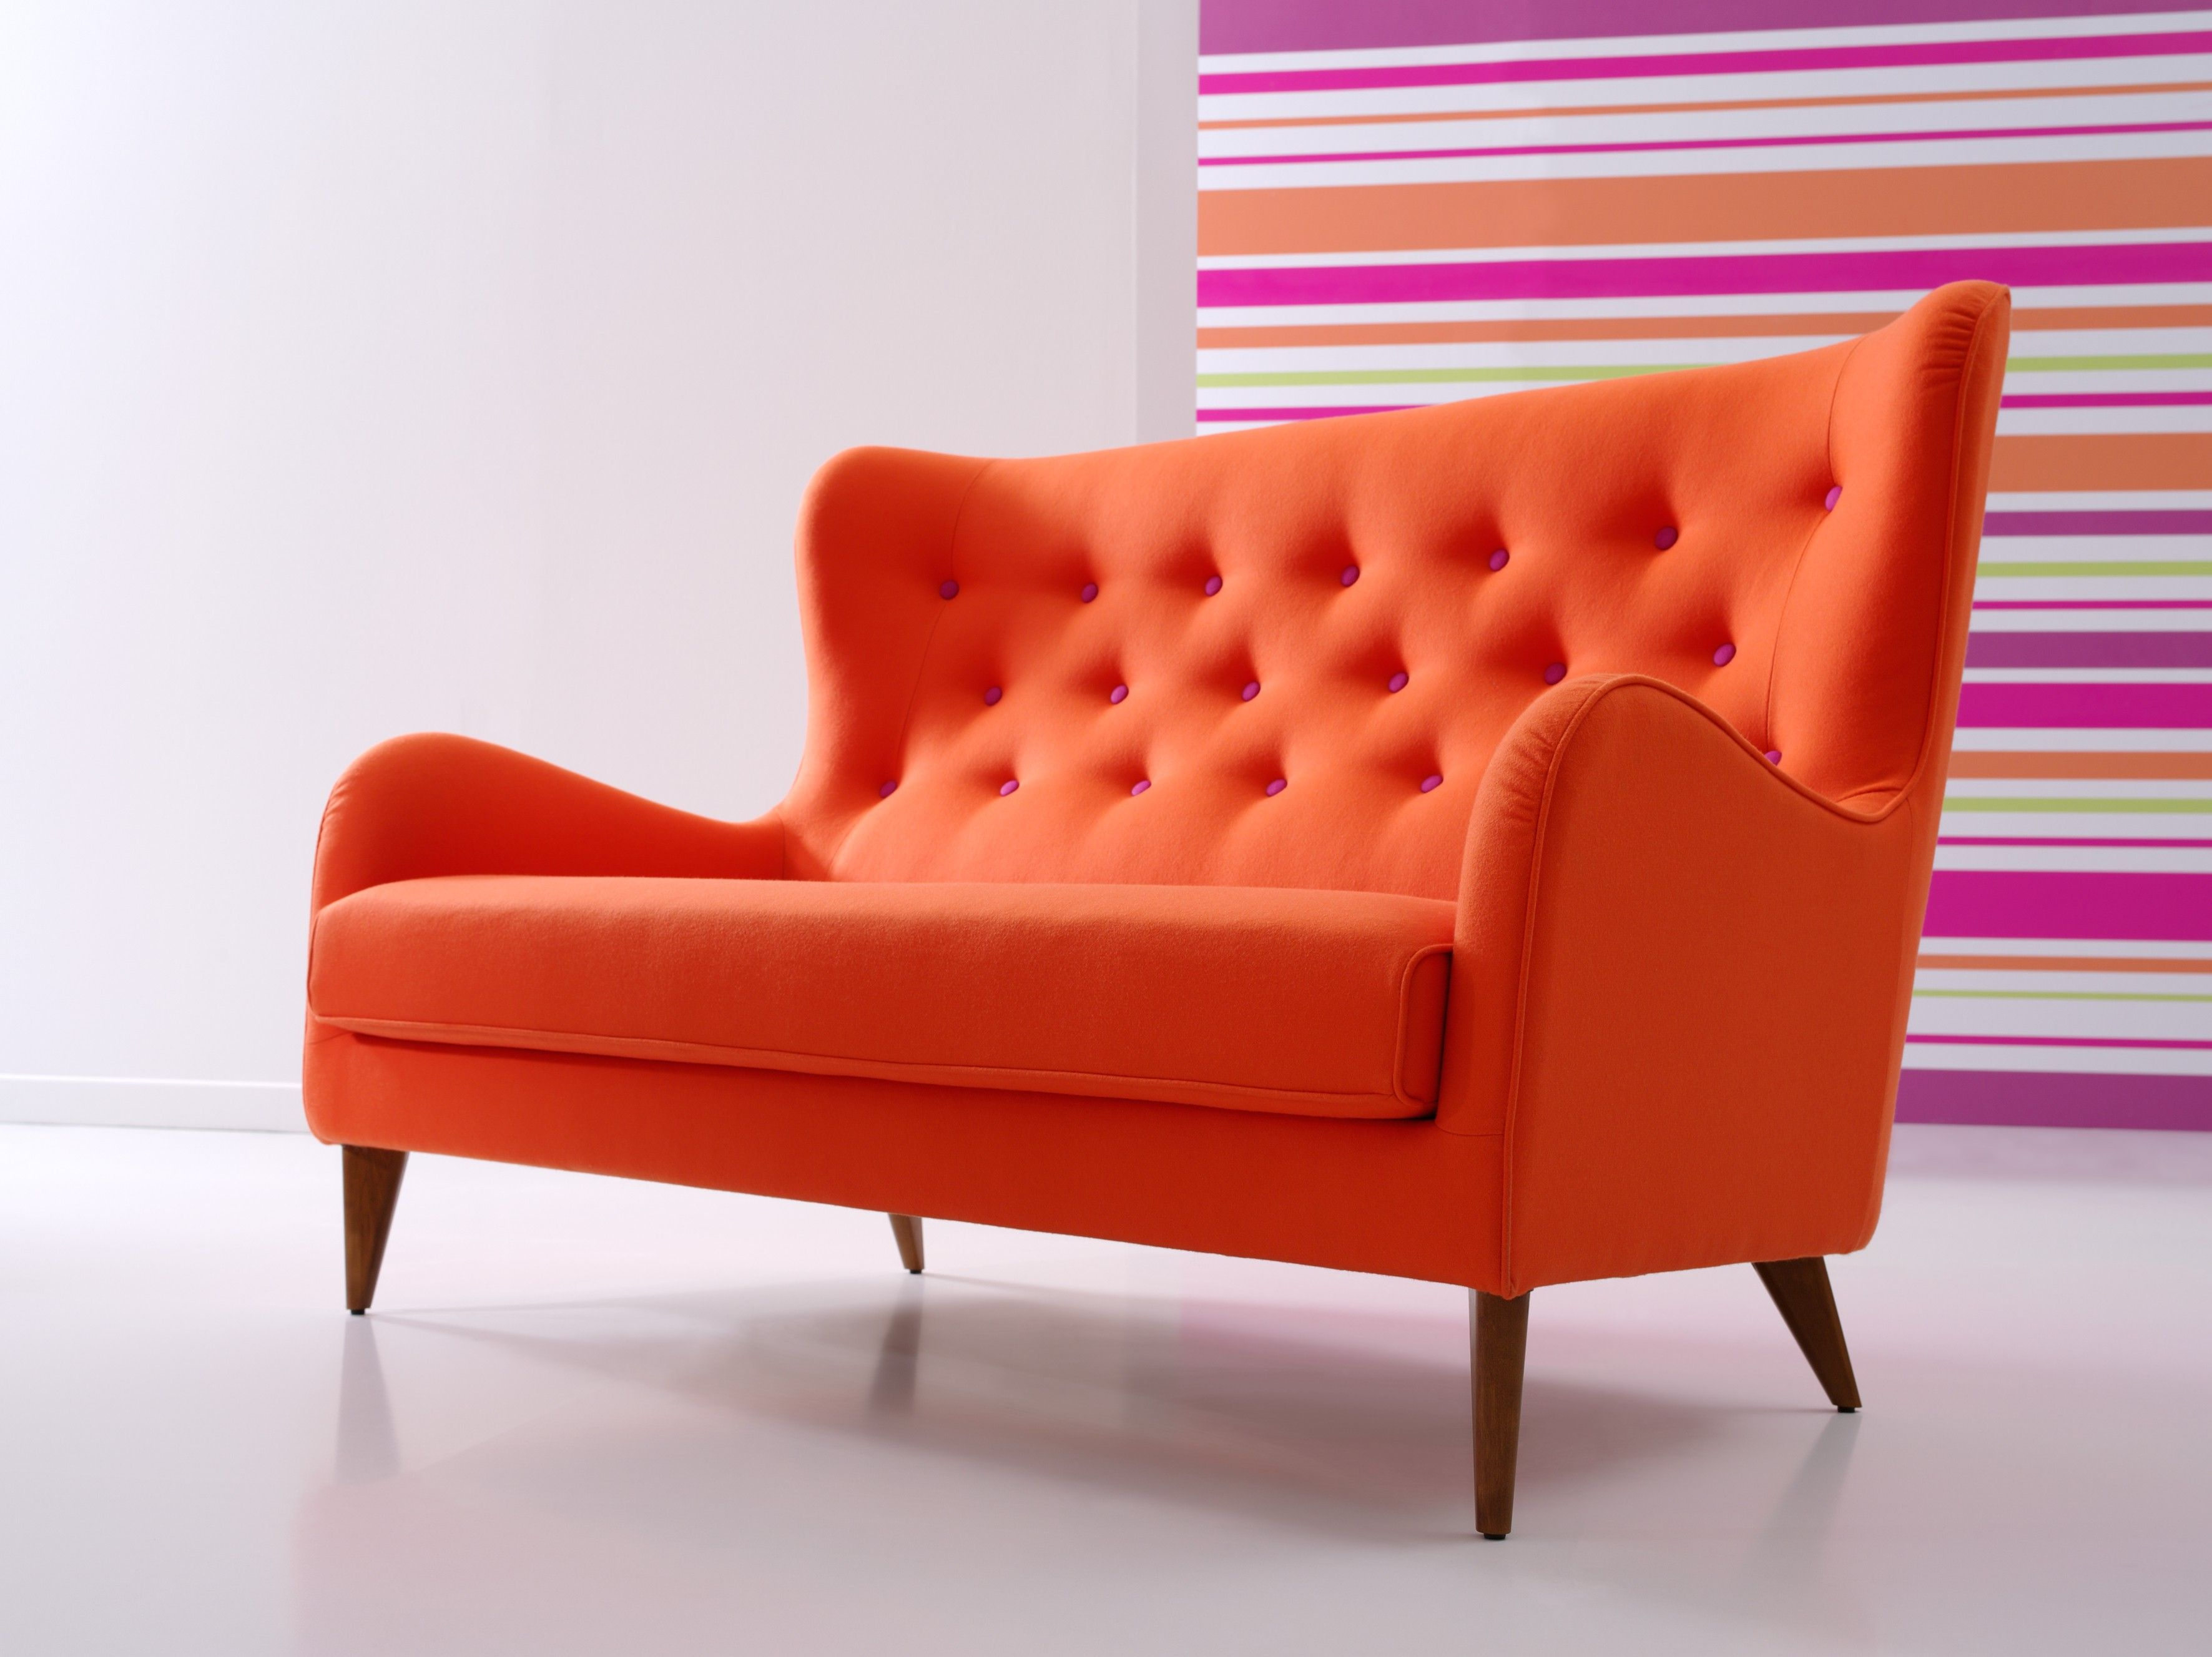 Furniture Wing Tufted Backseat Modern Orange Sofa With Four Base